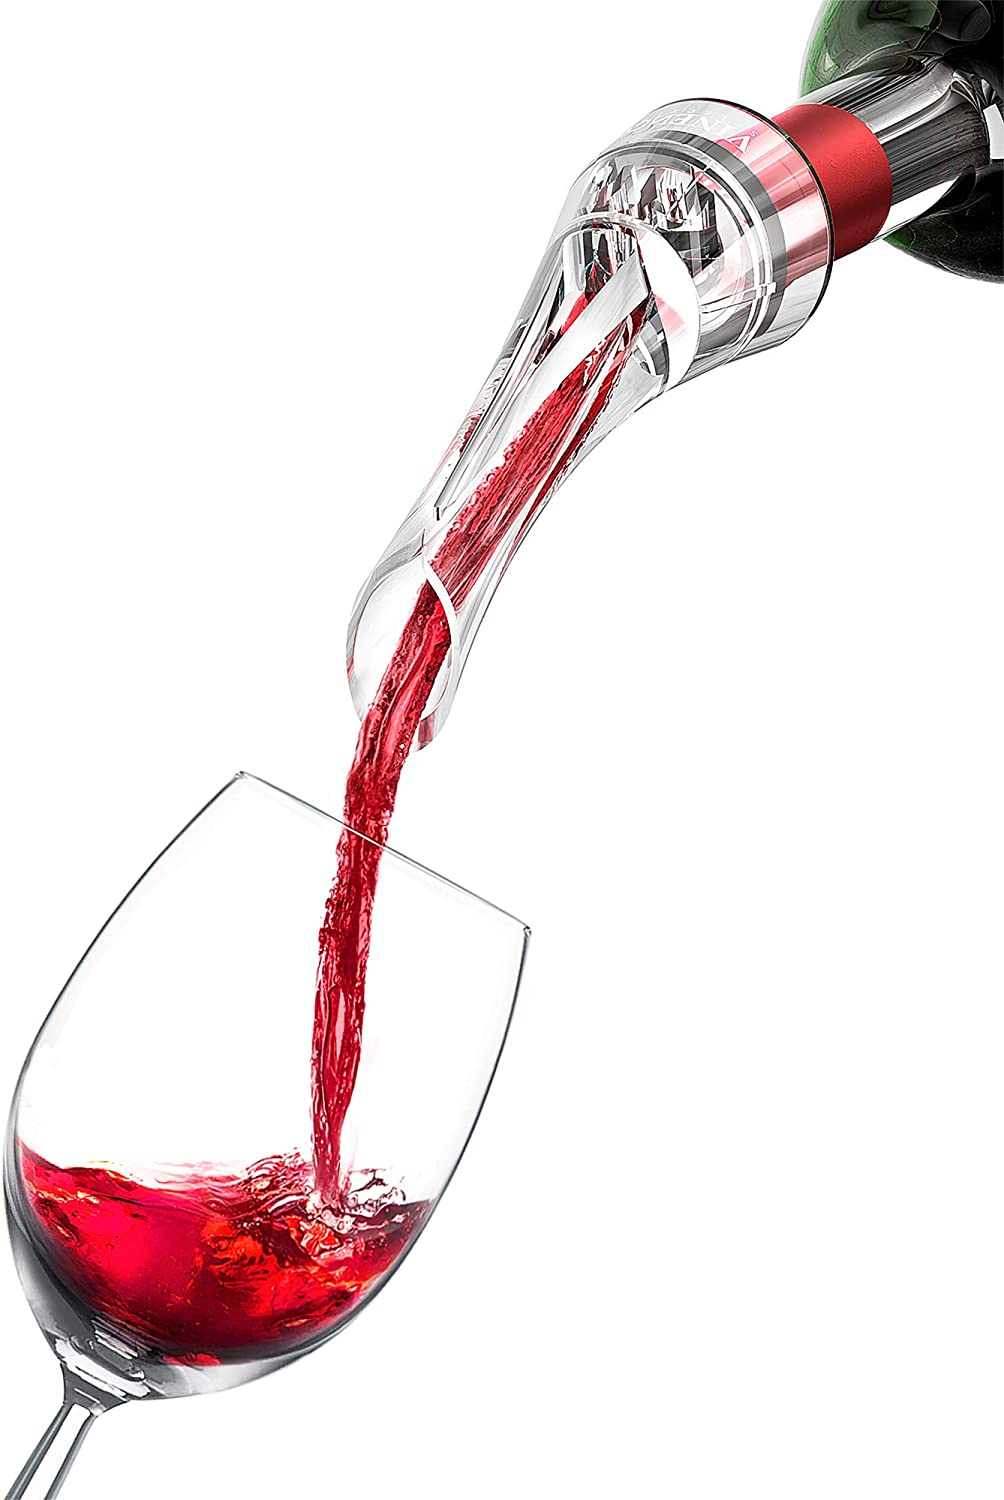 Drip Free Aerating Pourer Top Spout for Instant Aeration Gift Accessories Gadget Red White Wine Bottles Breather Aerator Decanting Chiller Wine Decanter Aeretor Stopper Spirits Tasting eBook